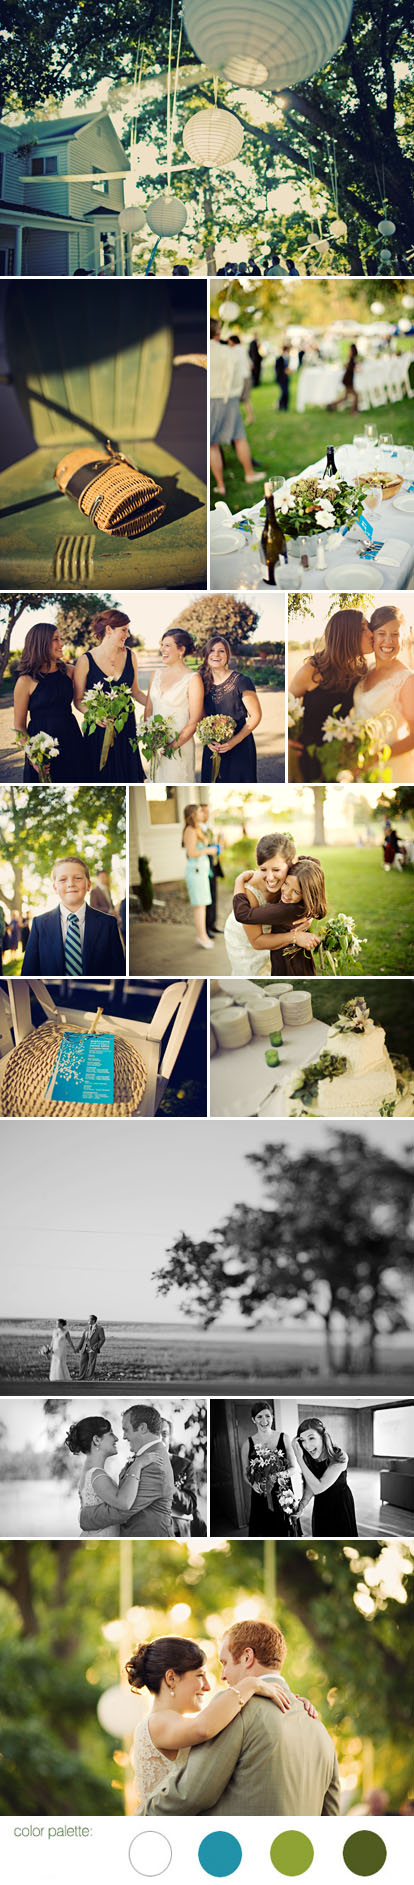 Sean Flanigan Photography, green, white and blue summer wedding color palette, casual wedding style